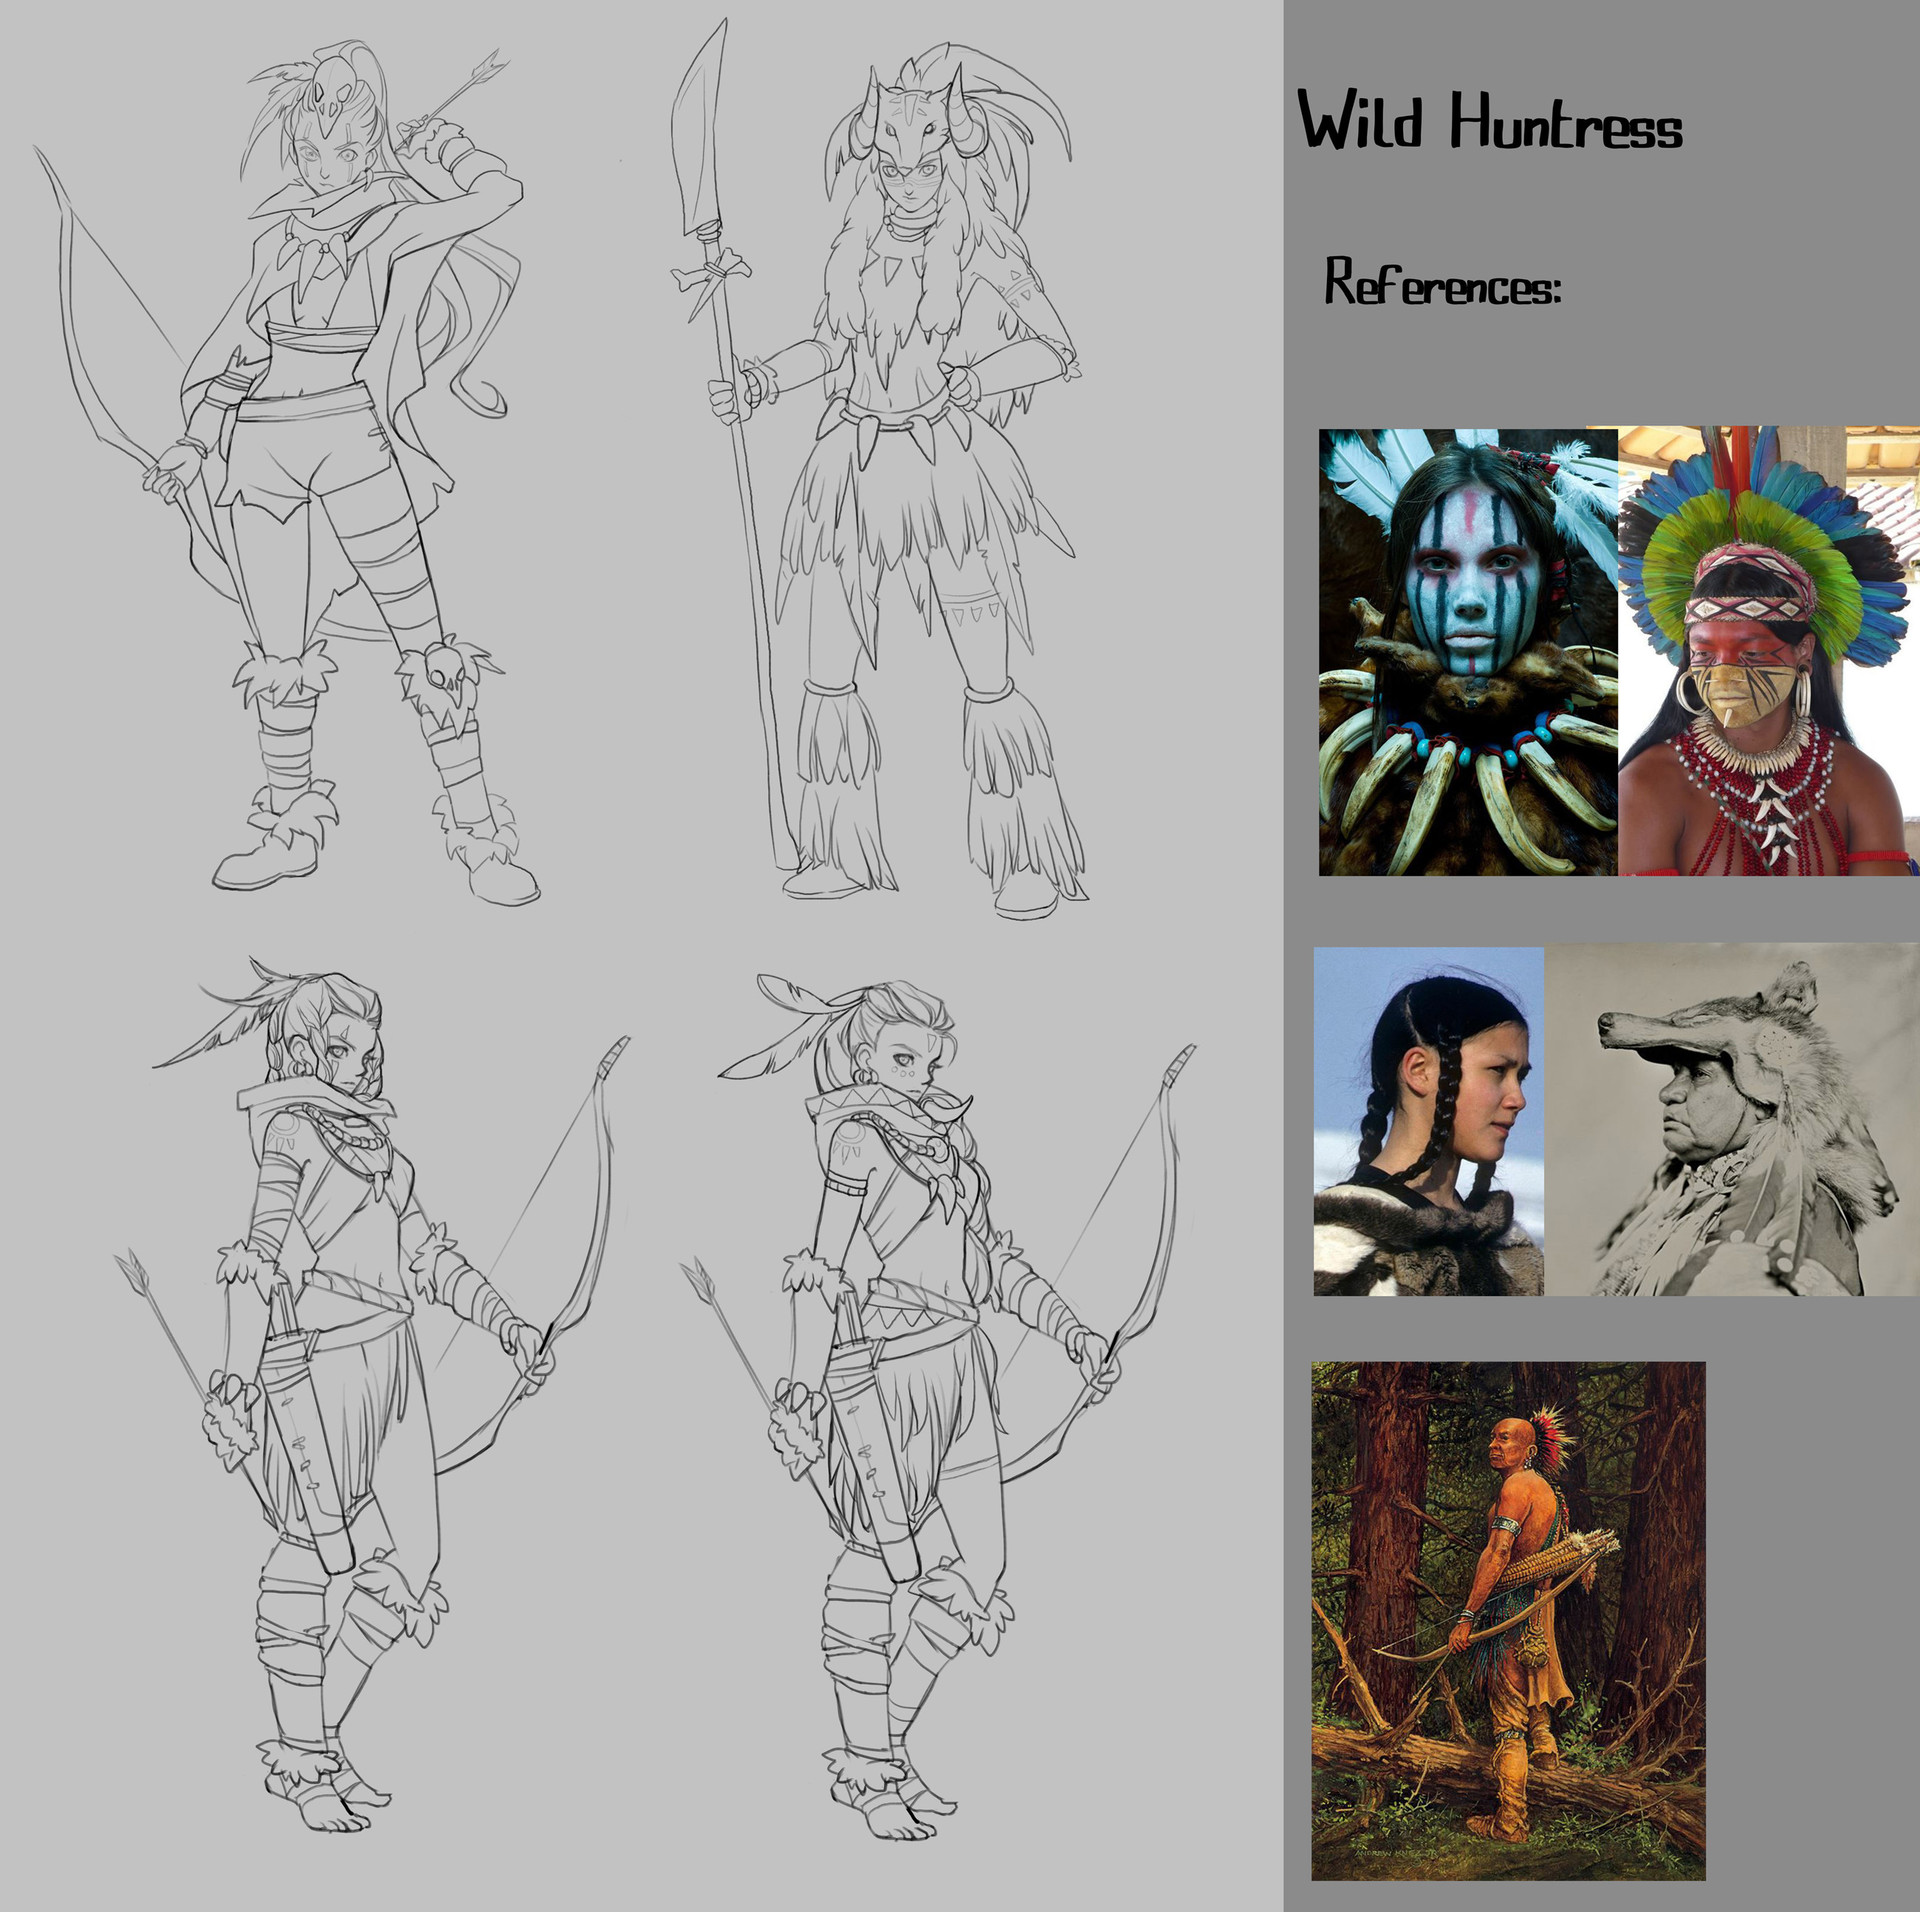 Cherlin mao charactersconcept huntress 4hours